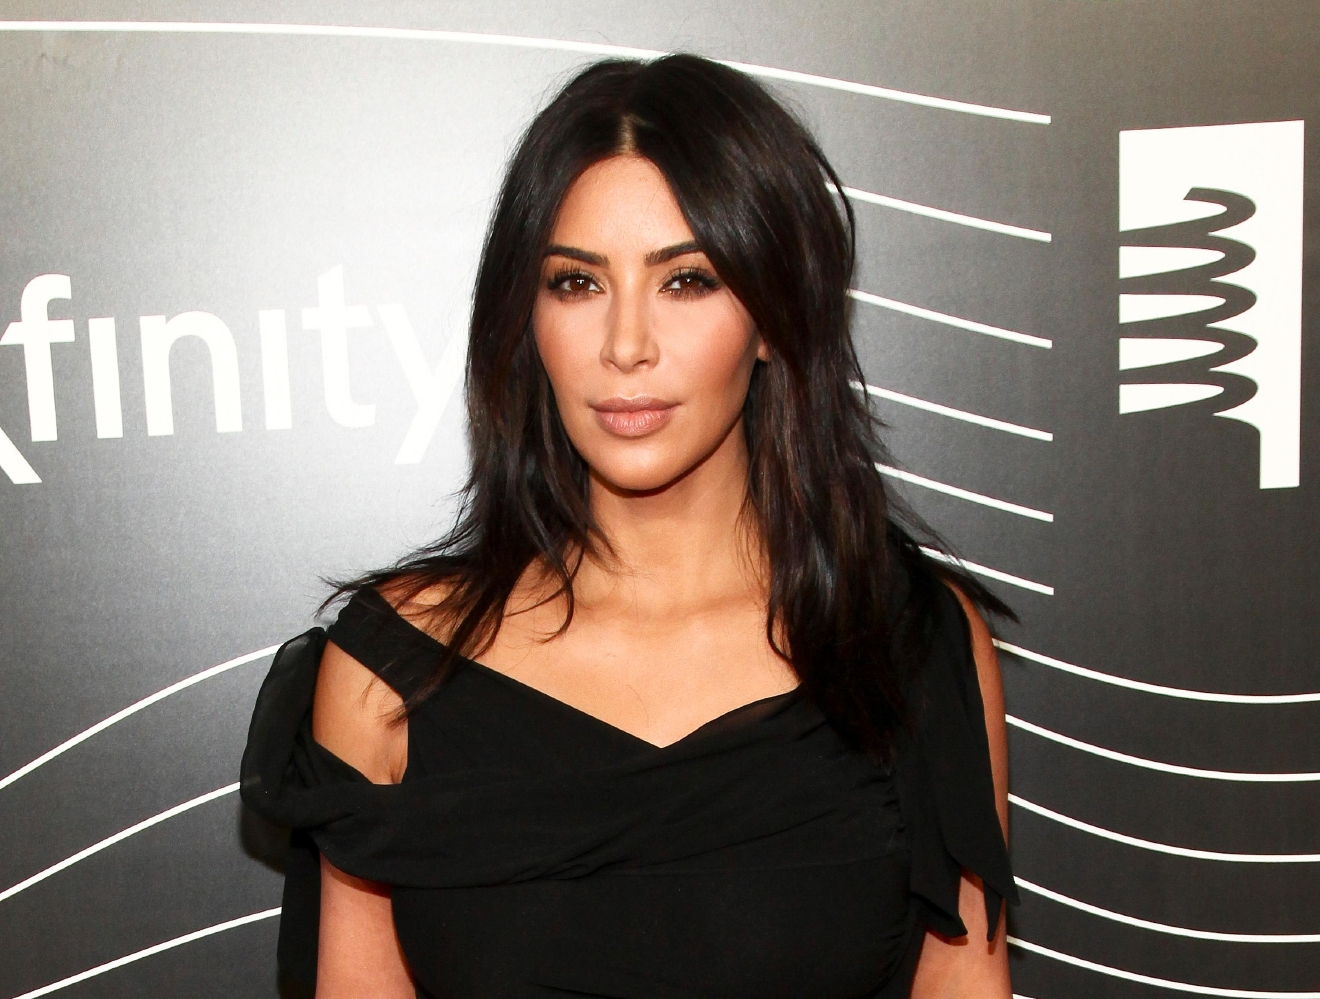 "FILE - In this May 16, 2016 file photo, Kim Kardashian West attends the 20th Annual Webby Awards in New York. Kardashian who has been laying low in a New York City apartment building since her robbery at gunpoint in Paris in October, breaks her silence in a new teaser for the family's reality show, ""Keeping Up with the Kardashians,"" returning in March. (Photo by Andy Kropa/Invision/AP, File)"